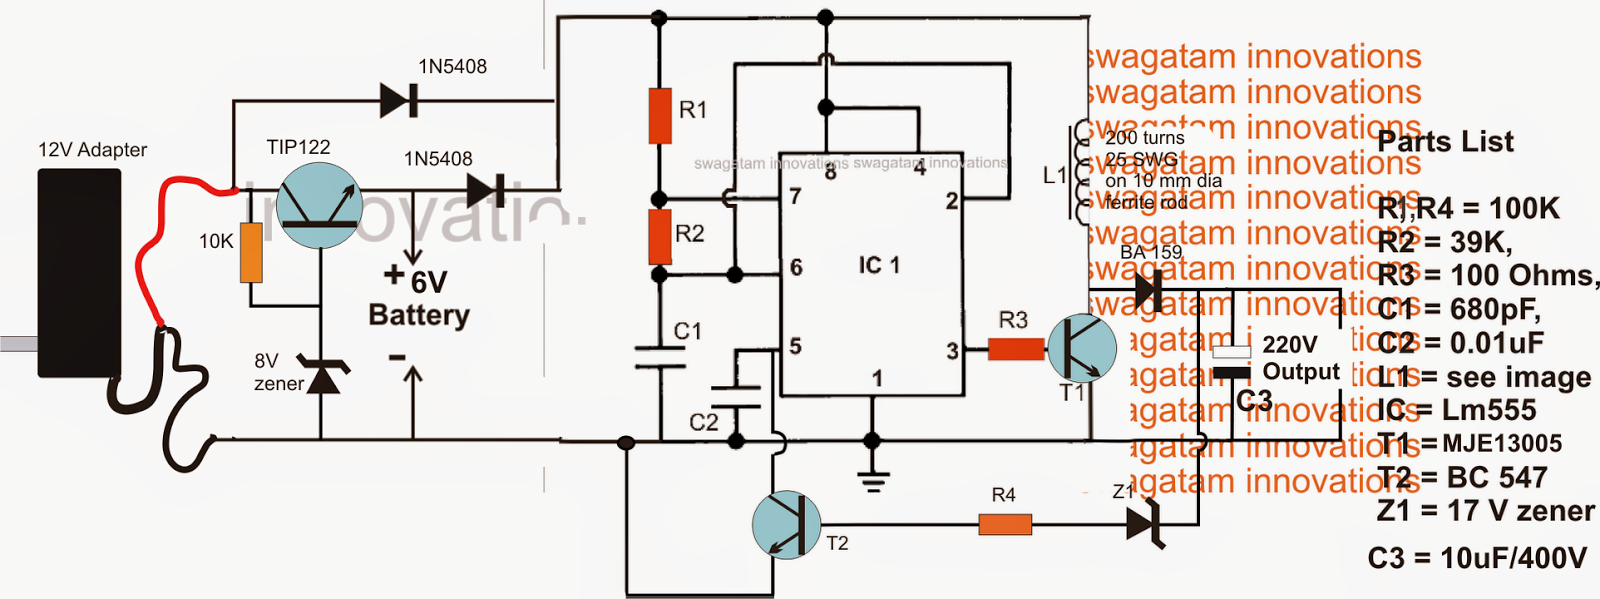 6v To 220v Schematic Circuit Diagram - 6v To 220v Inverter Circuit Diagram